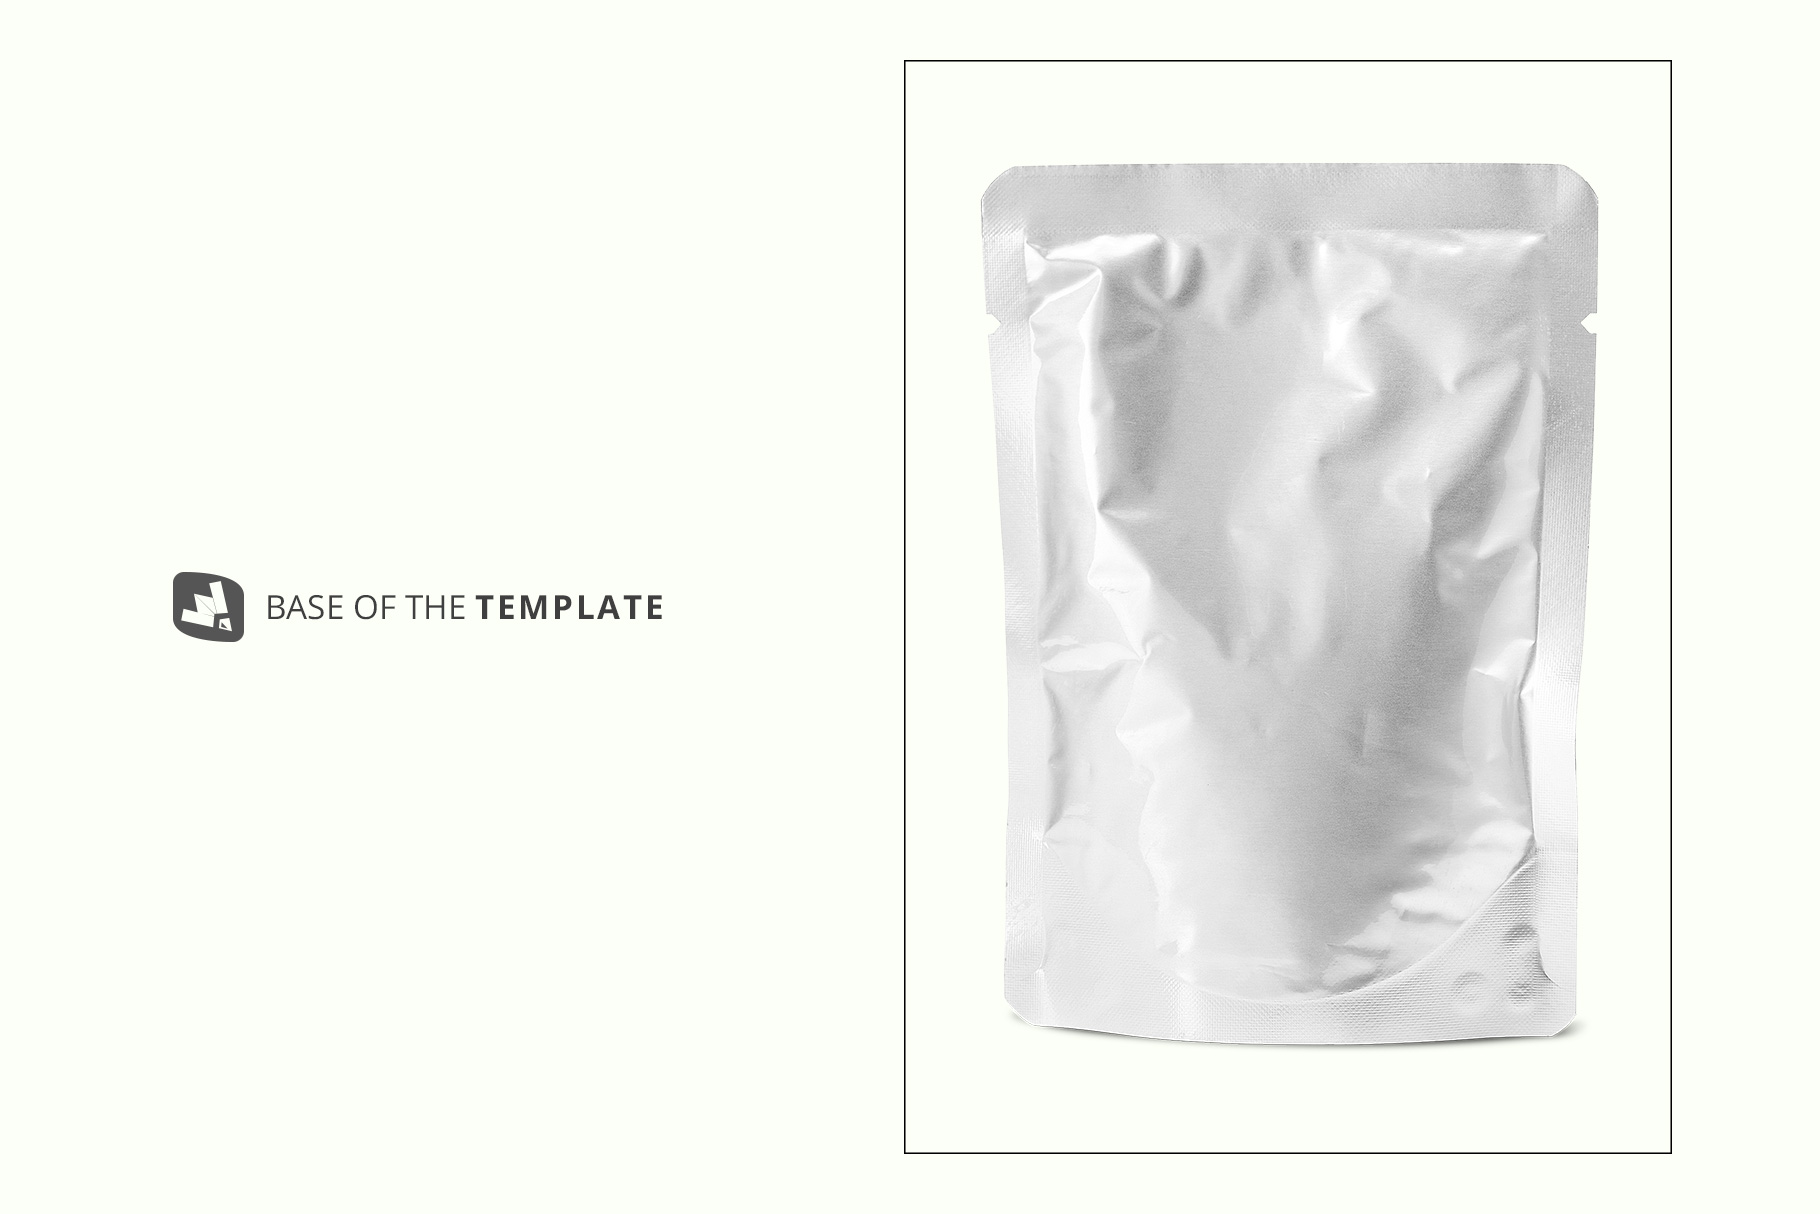 base image of the flexible foil pouch packaging mockup